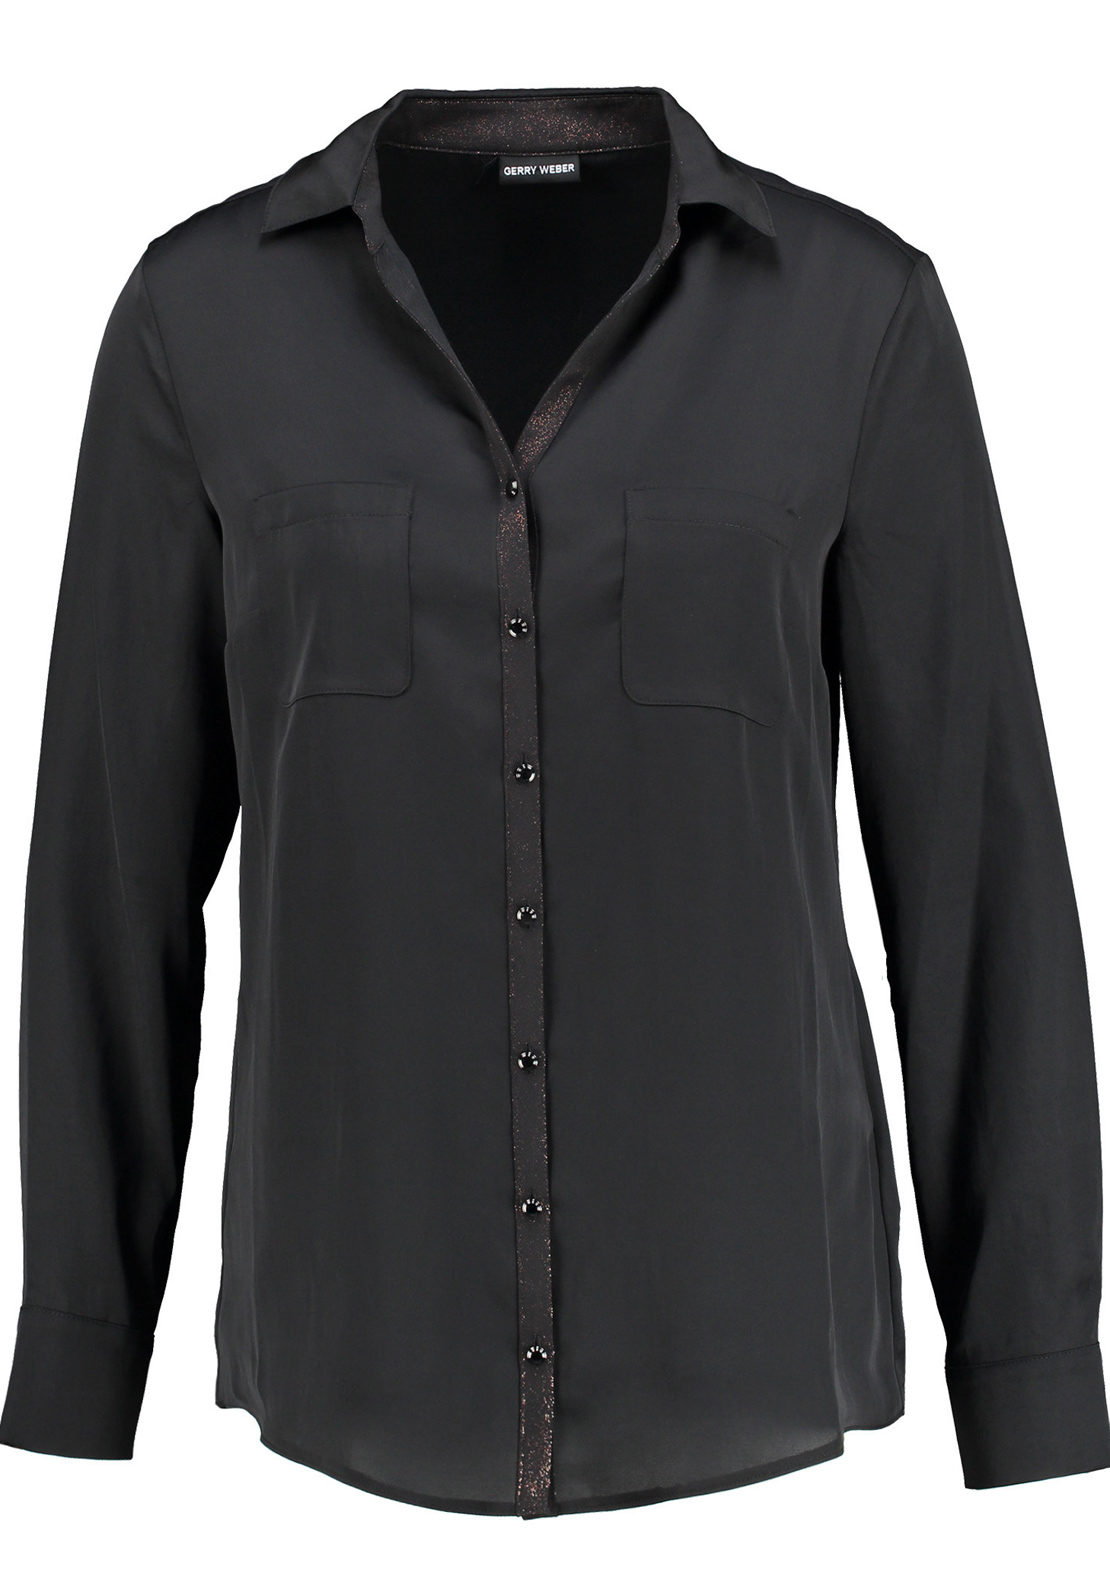 Gerry Weber Classic Long Sleeve Blouse, Black